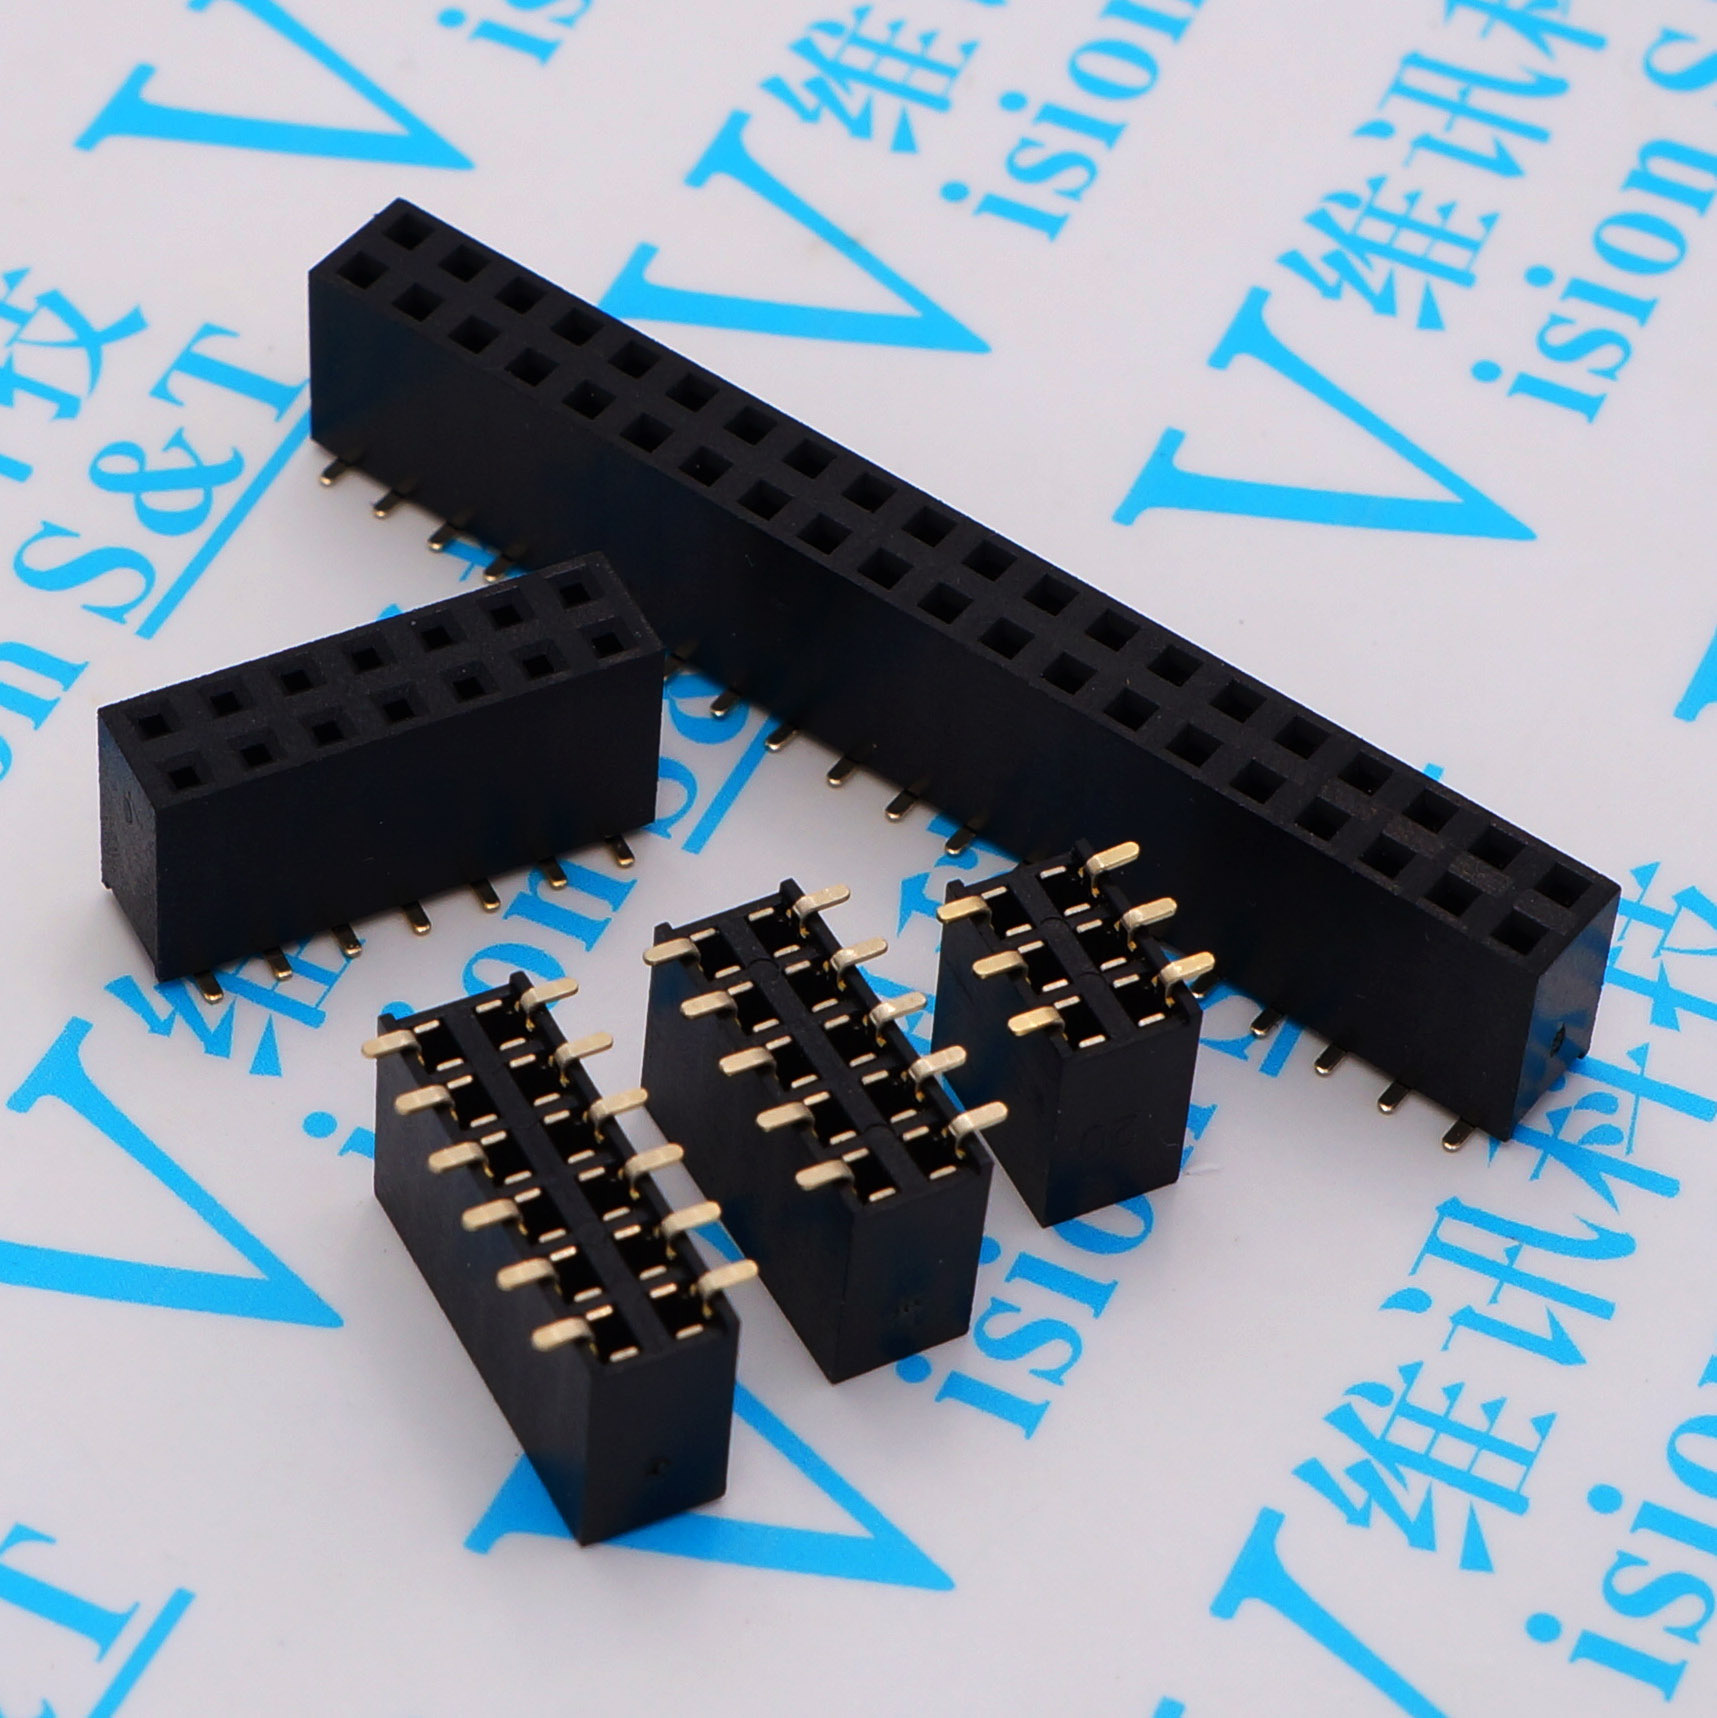 10PCS 1.27MM SMD Double Row Female Socket 2*2/3/4/5/6/7/8/9/10/12/16/20/40/ PIN Female Header Connector